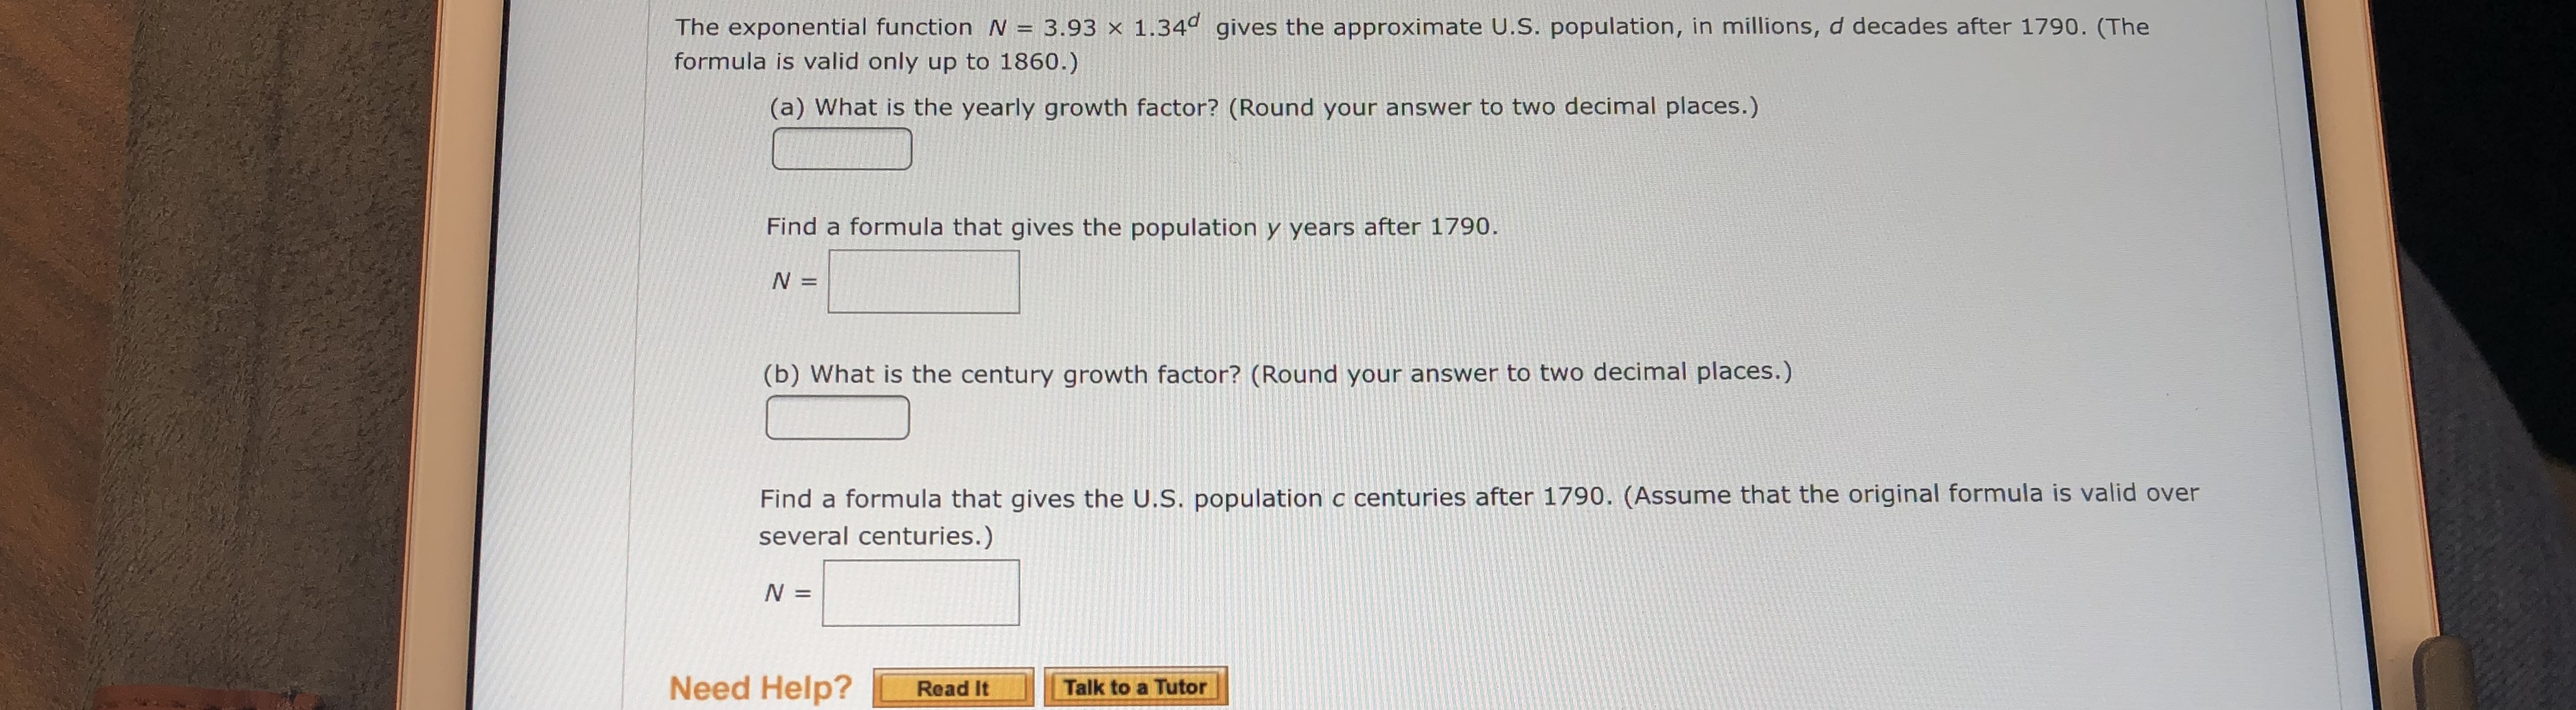 The exponential function N 3.93 x 1.34d gives the approximate U.S. population, in millions, d decades after 1790. (The formula is valid only up to 1860.) (a) What is the yearly growth factor? (Round your answer to two decimal places.) Find a formula that gives the population y years after 1790 N = (b) What is the century growth factor? (Round your answer to two decimal places.) Find a formula that gives the U.S. population c centuries after 1790. (Assume that the original formula is valid over several centuries.) N = Need Help? Read It Talk to a Tutor